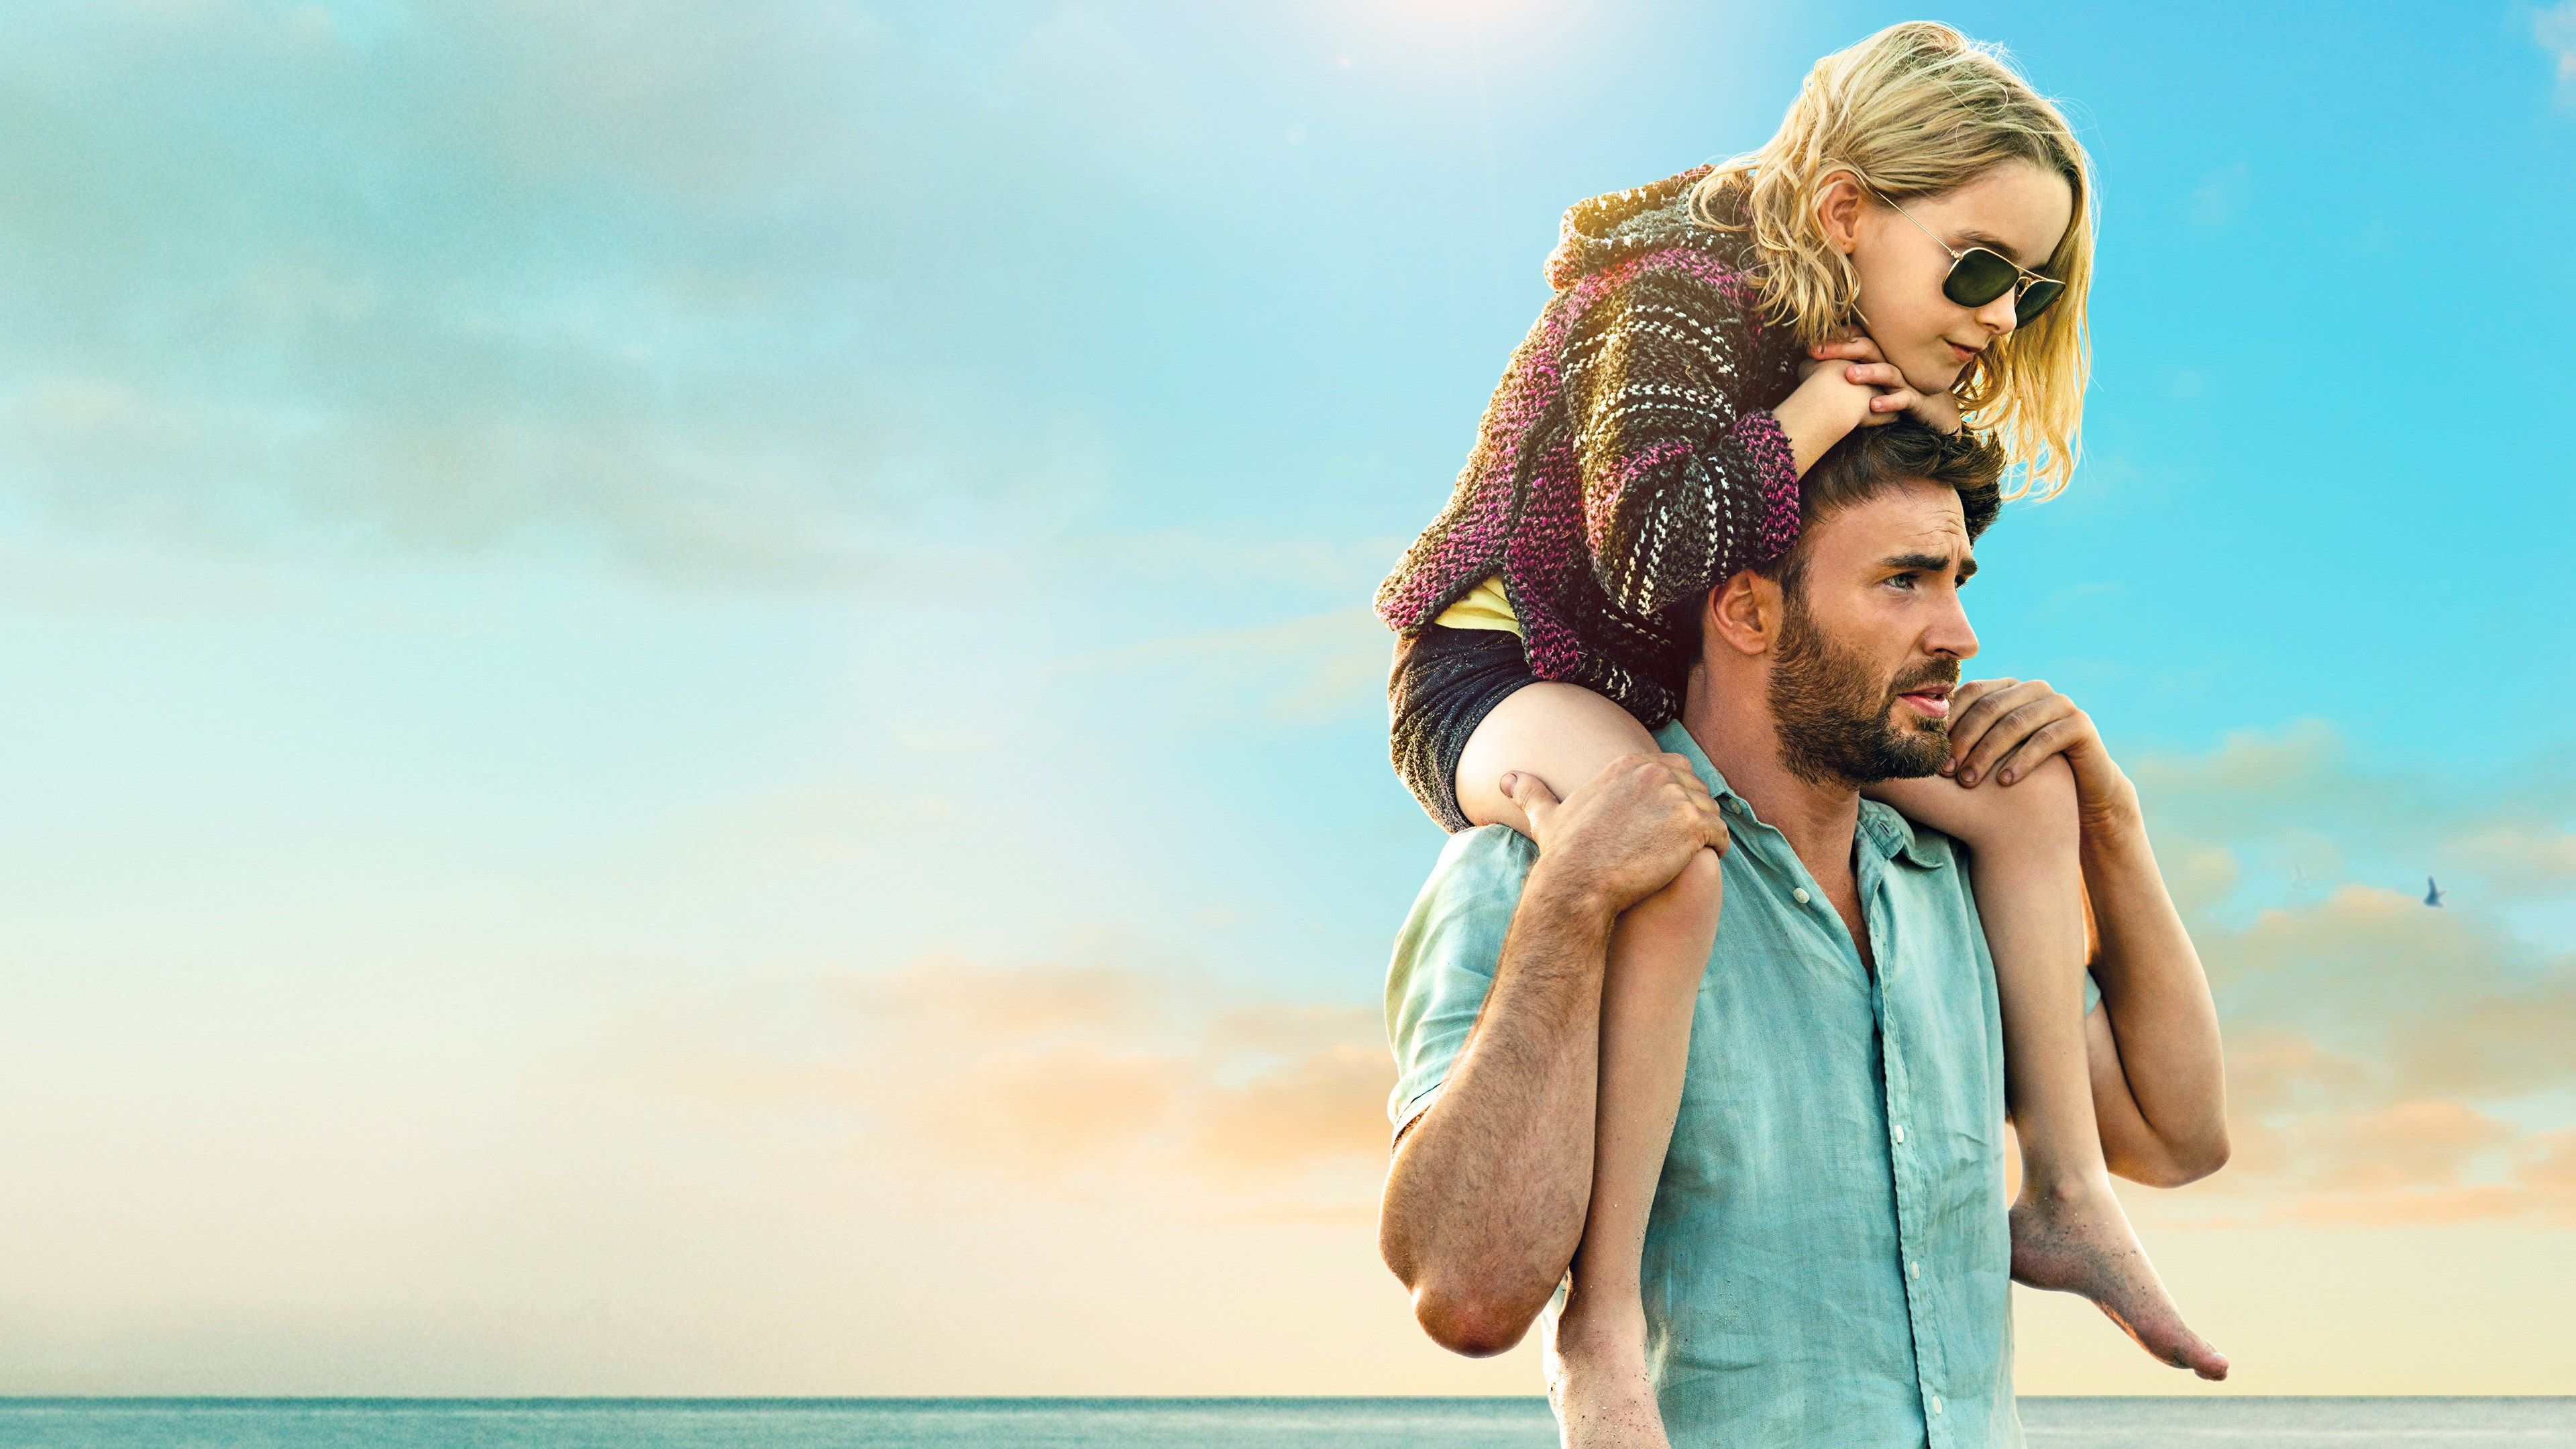 3840x2160 Gifted 4k Full Hd Image Chris Evans Mckenna Grace Chris Evans Gifted